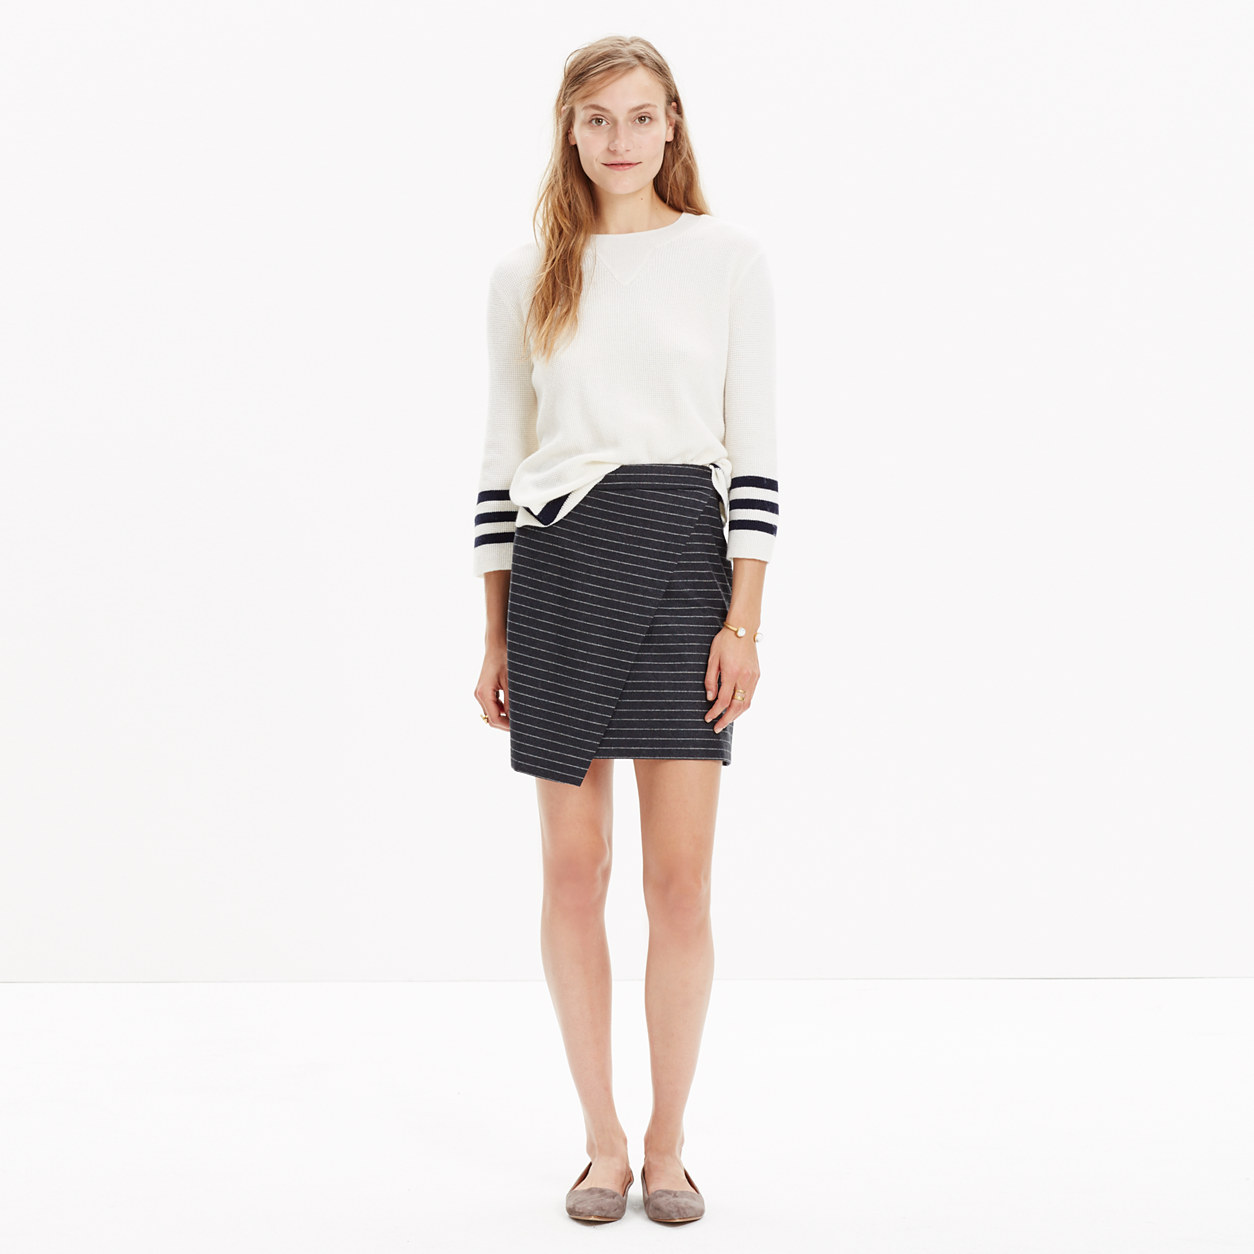 Asymmetrical Mini Skirt in Pinstripe : mini | Madewell